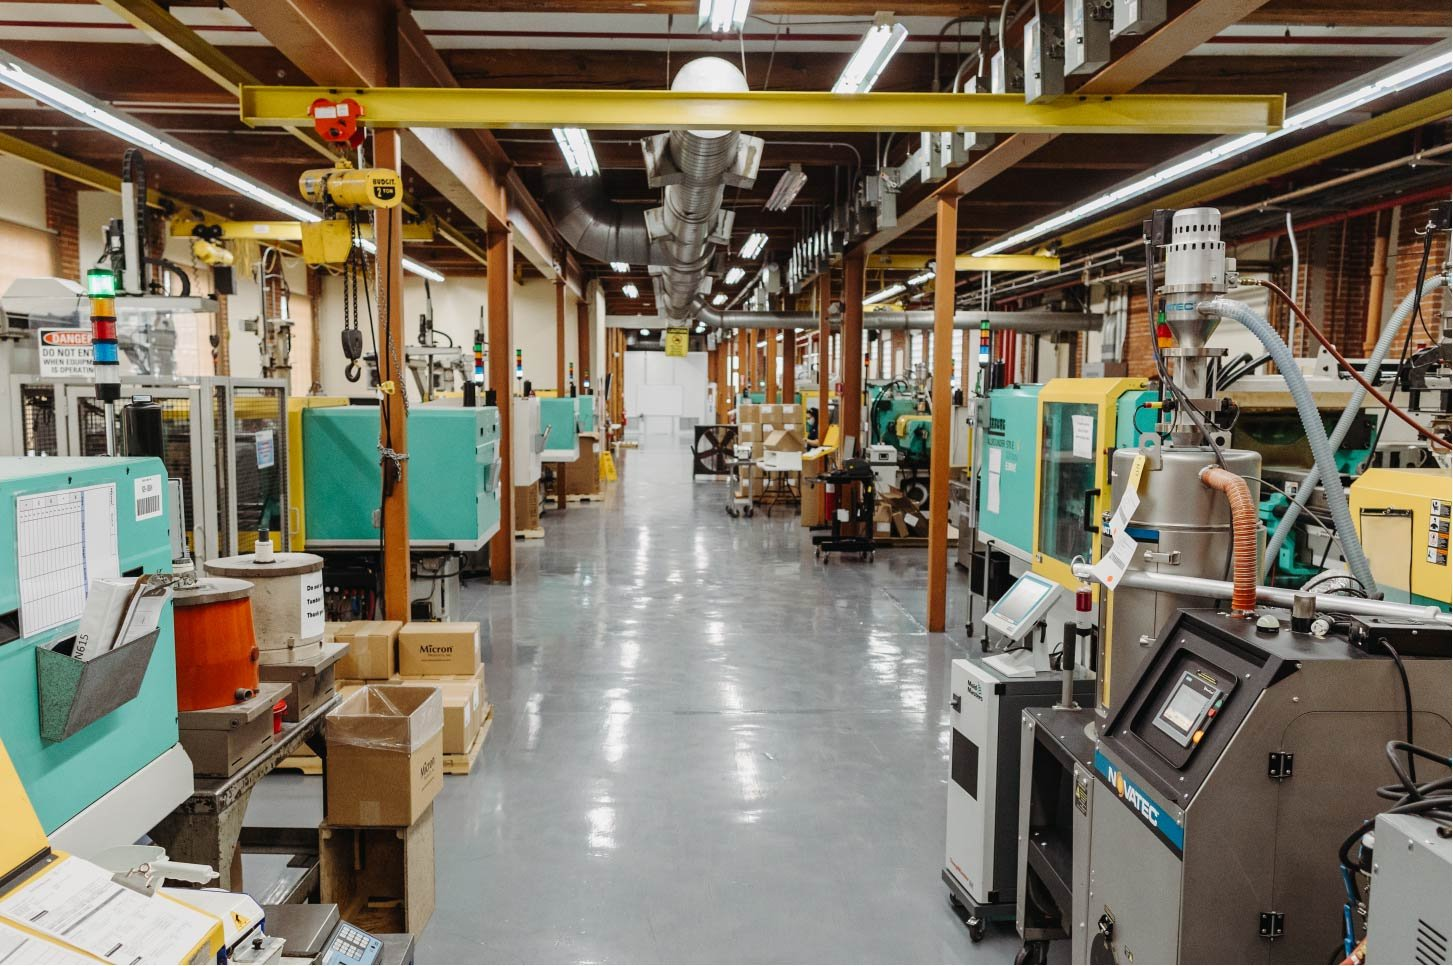 Manufacturing floor featuring two rows of Arburg injection molding machines